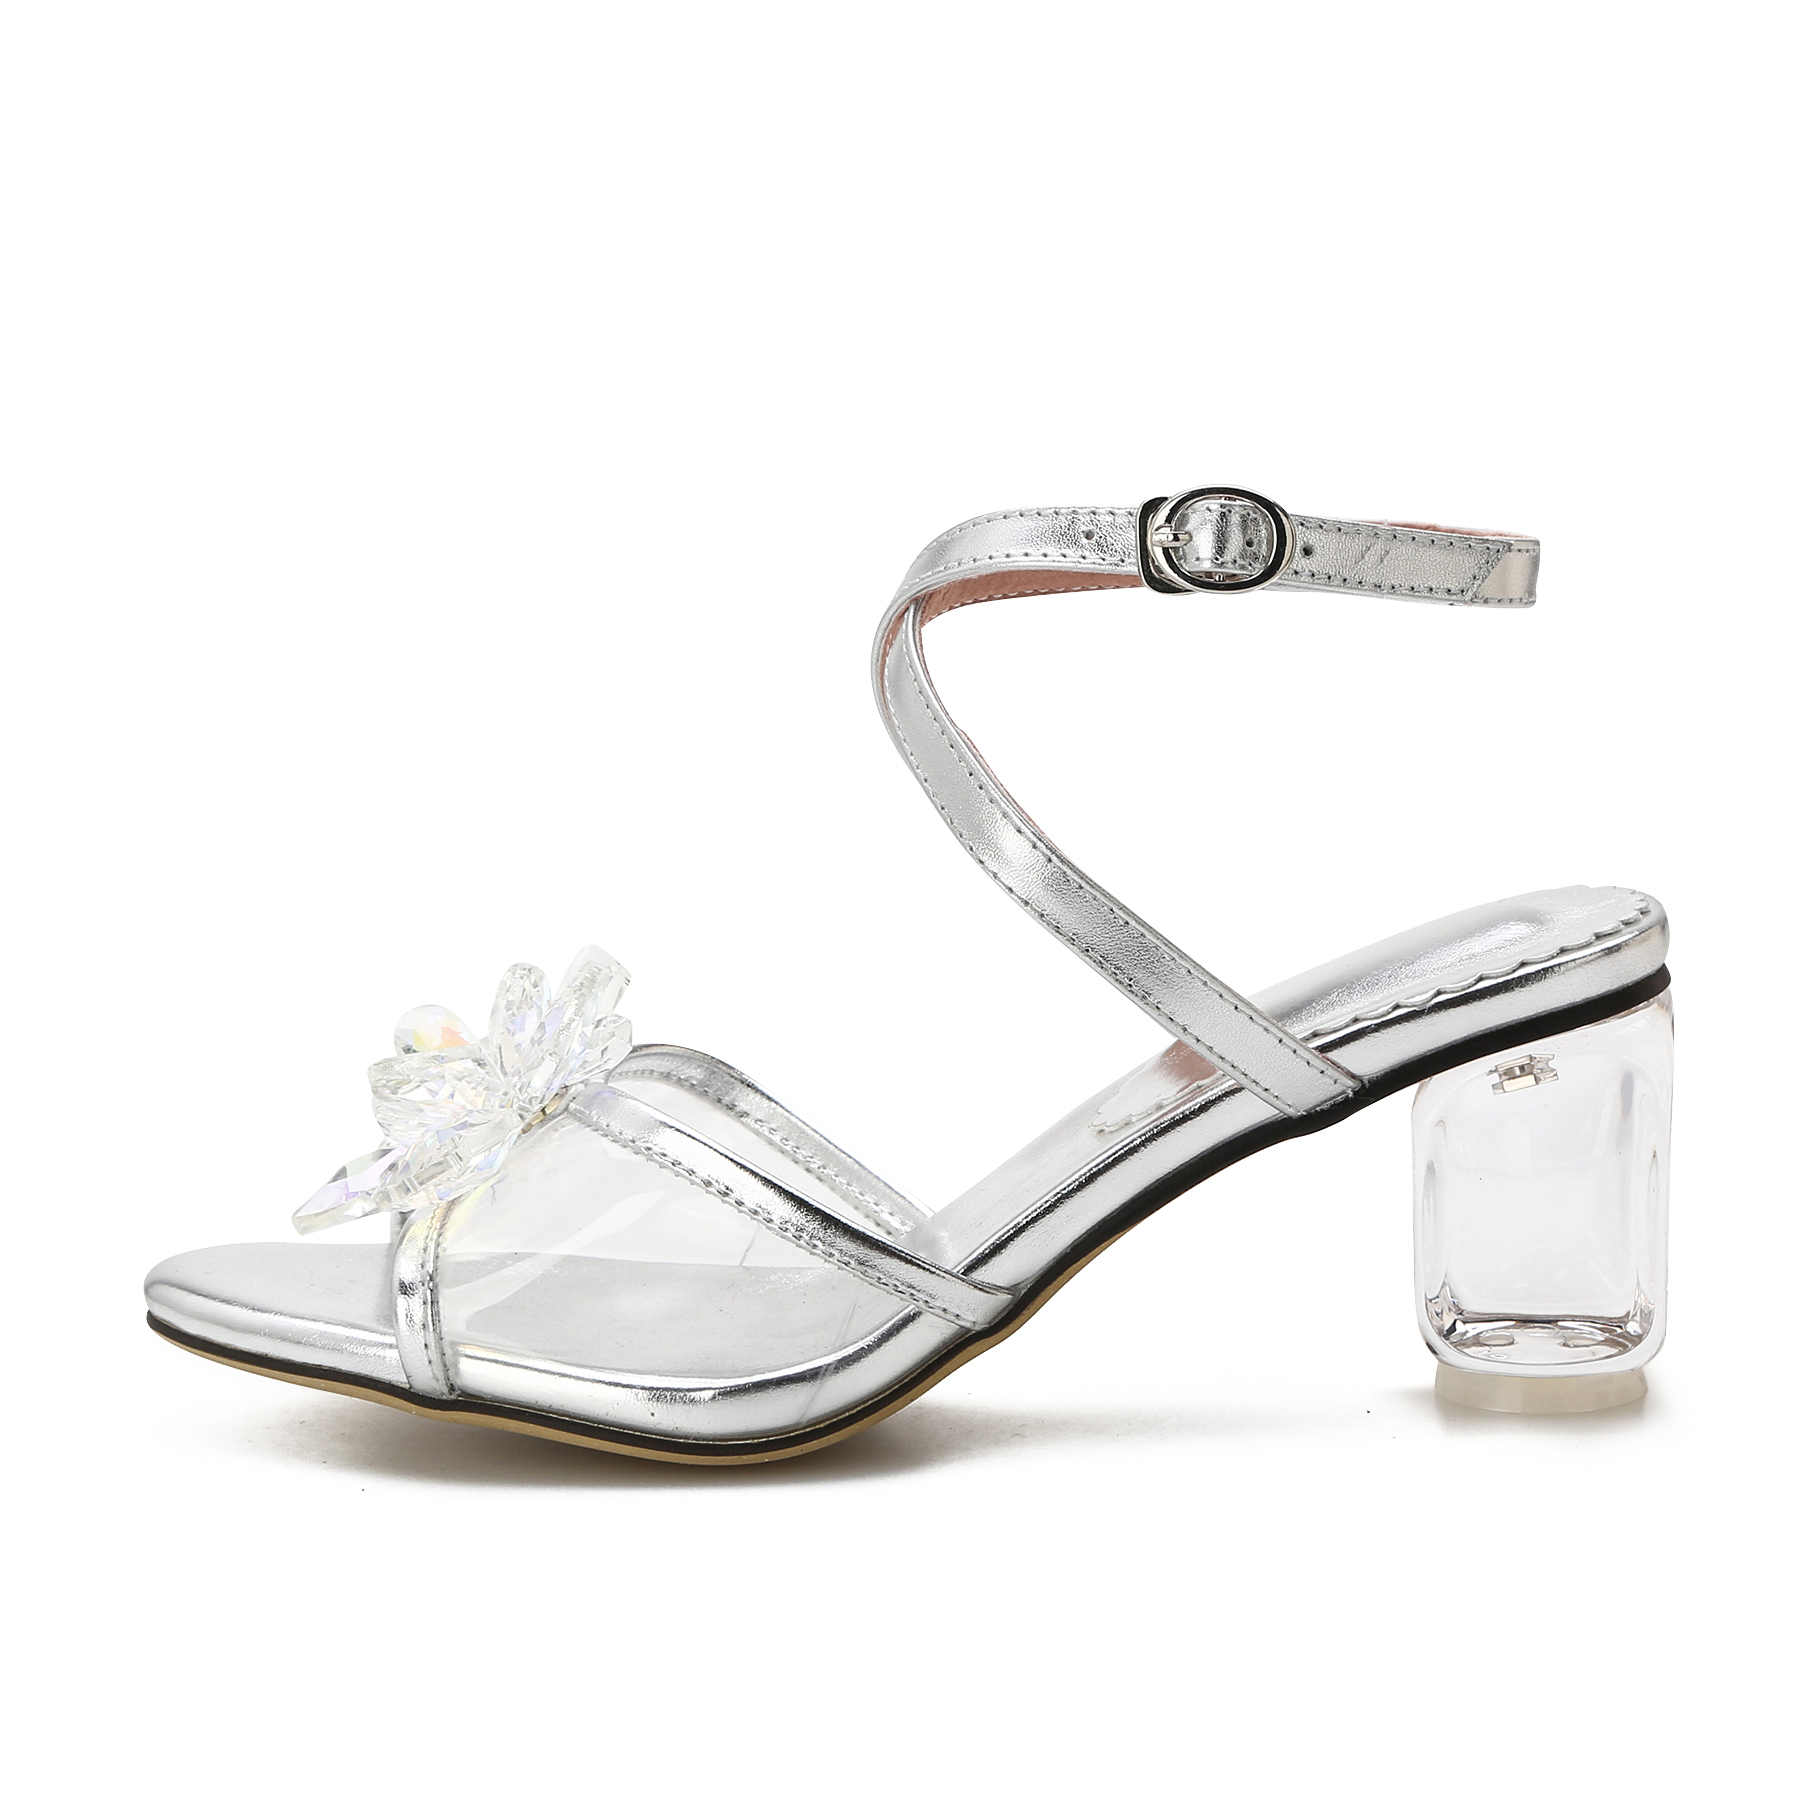 b7684b55be9 US  60 - Arden Furtado 2018 summer crystal high heels rhinestone flowers  ankle strap fashion silver sandals genuine leather shoes woman -  www.ardenfurtado. ...